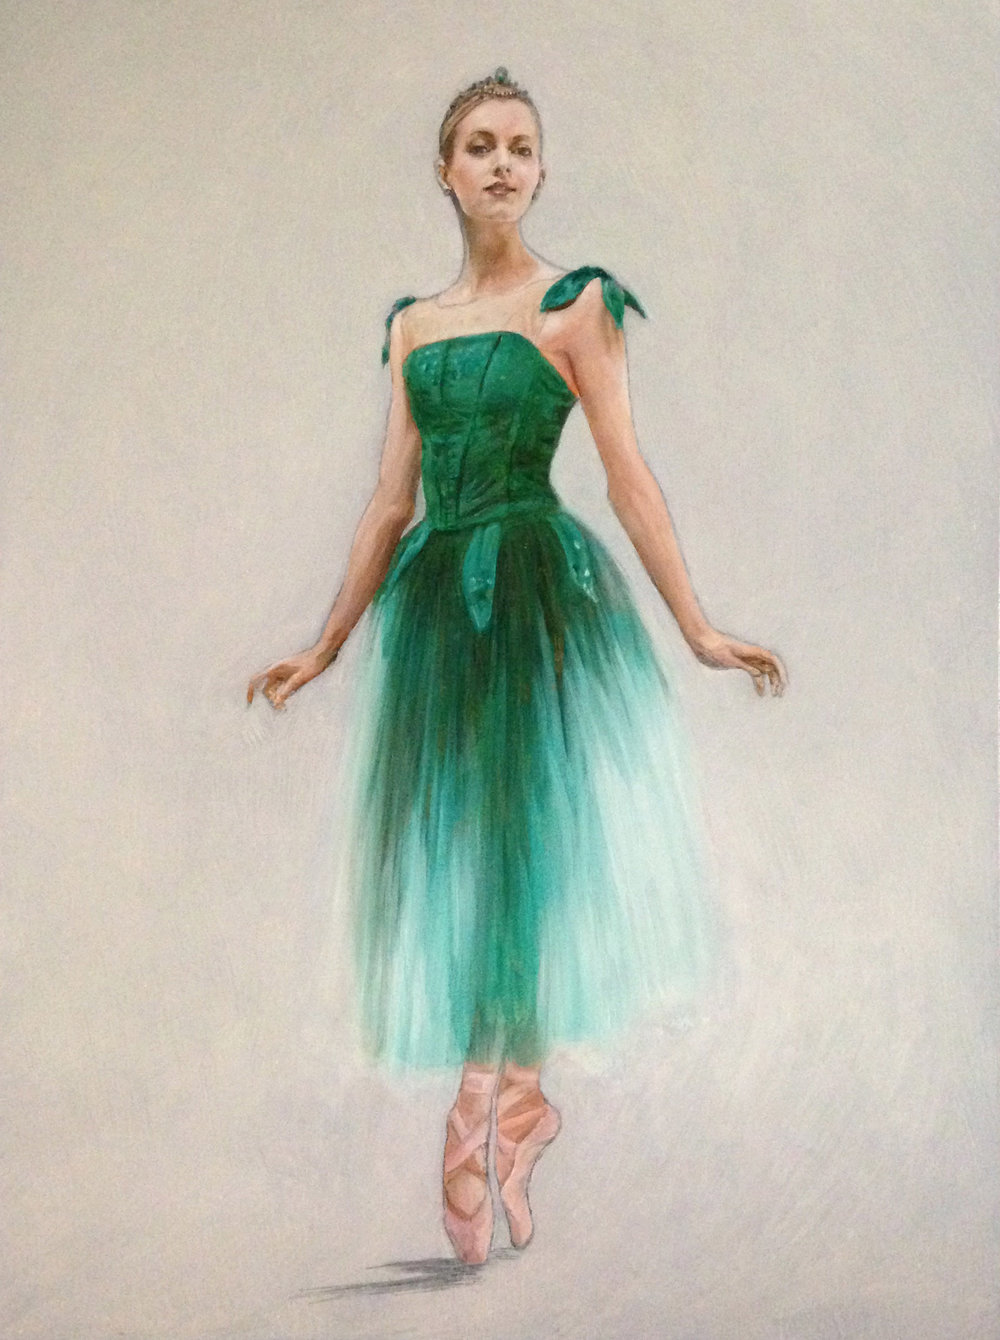 "Emeralds II, Oil on Panel, 24"" x 18"" Available via  Saatchi"